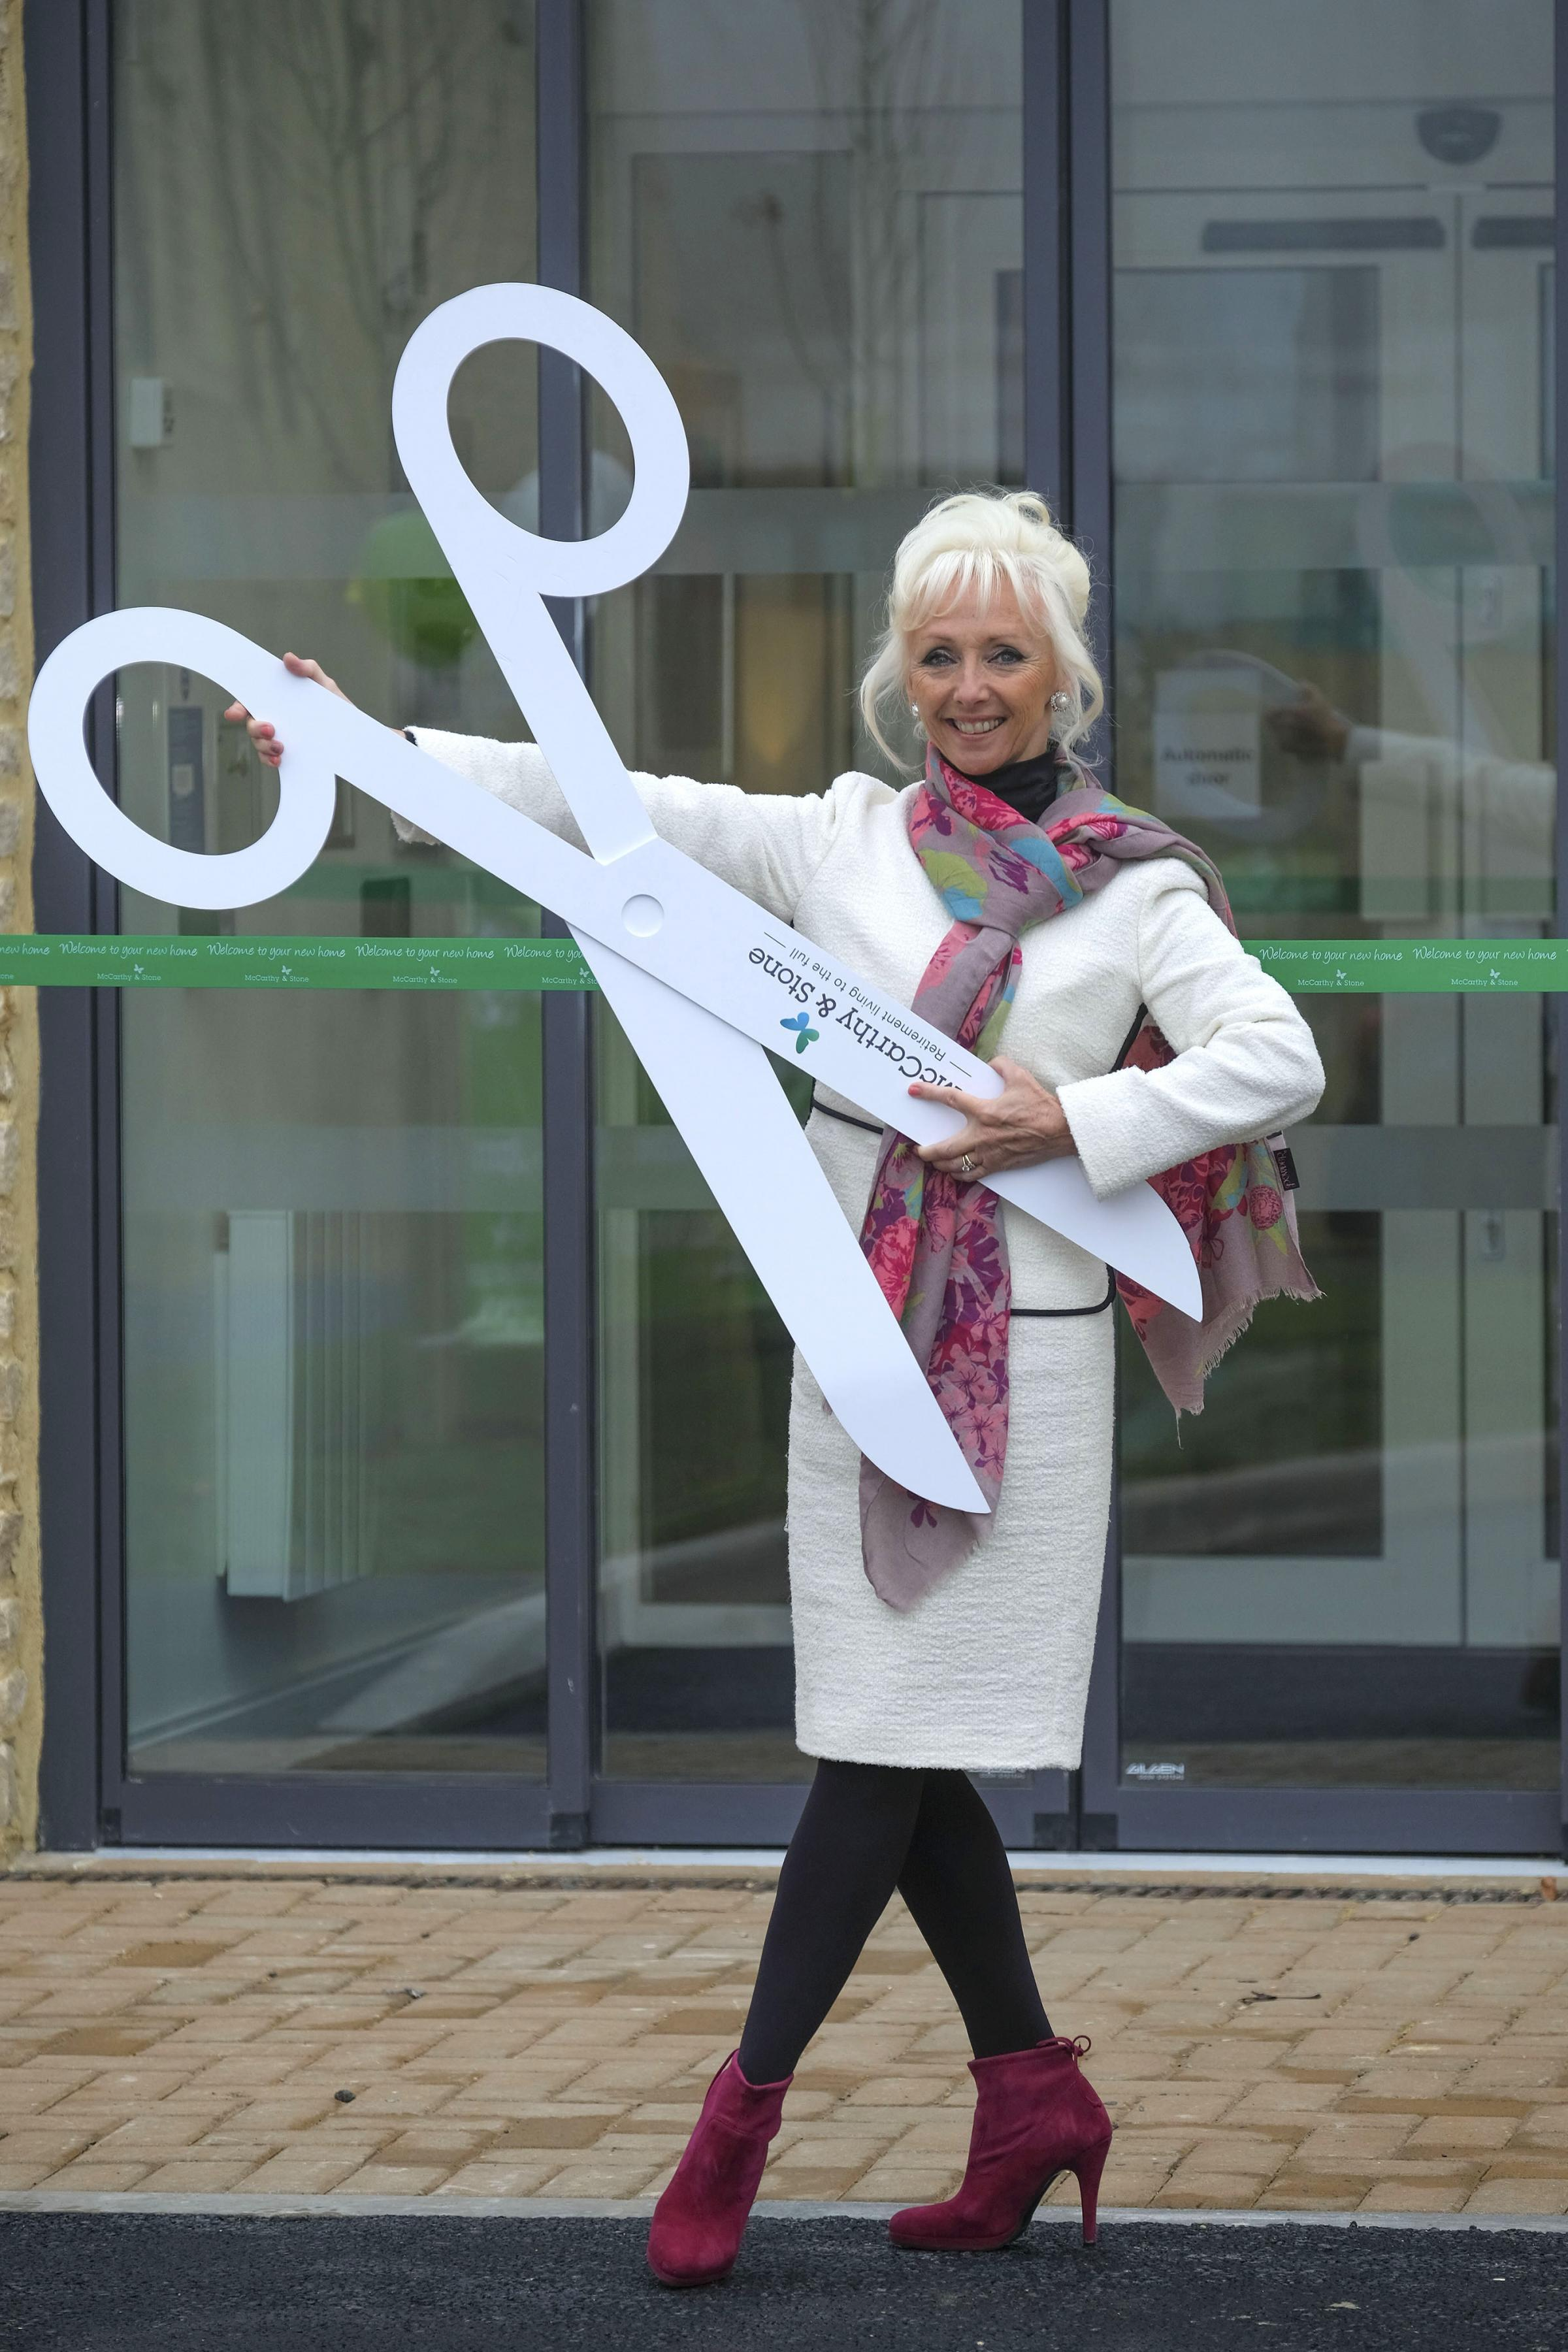 Debbie McGee, former Strictly star, opens Mccarthy and Stone development in Stow-On-The-Wold